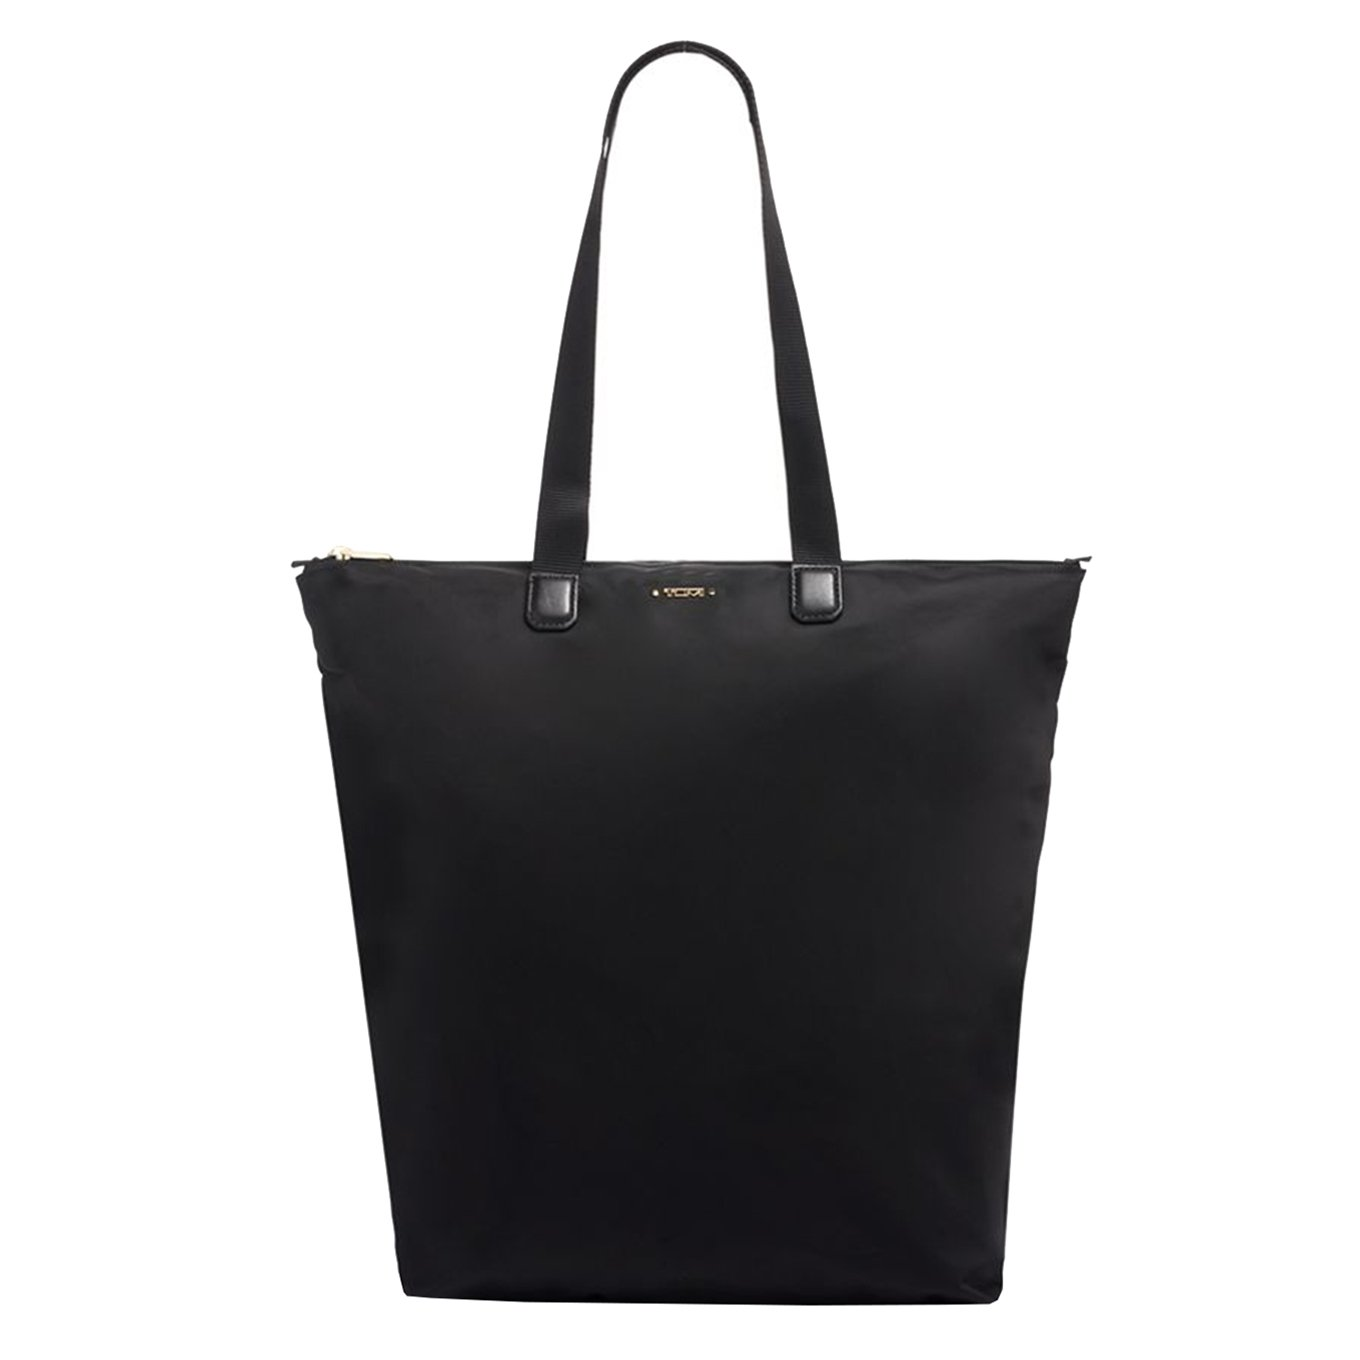 Tumi Voyageur Just in Case Tote black Damestas <br/></noscript><img class=